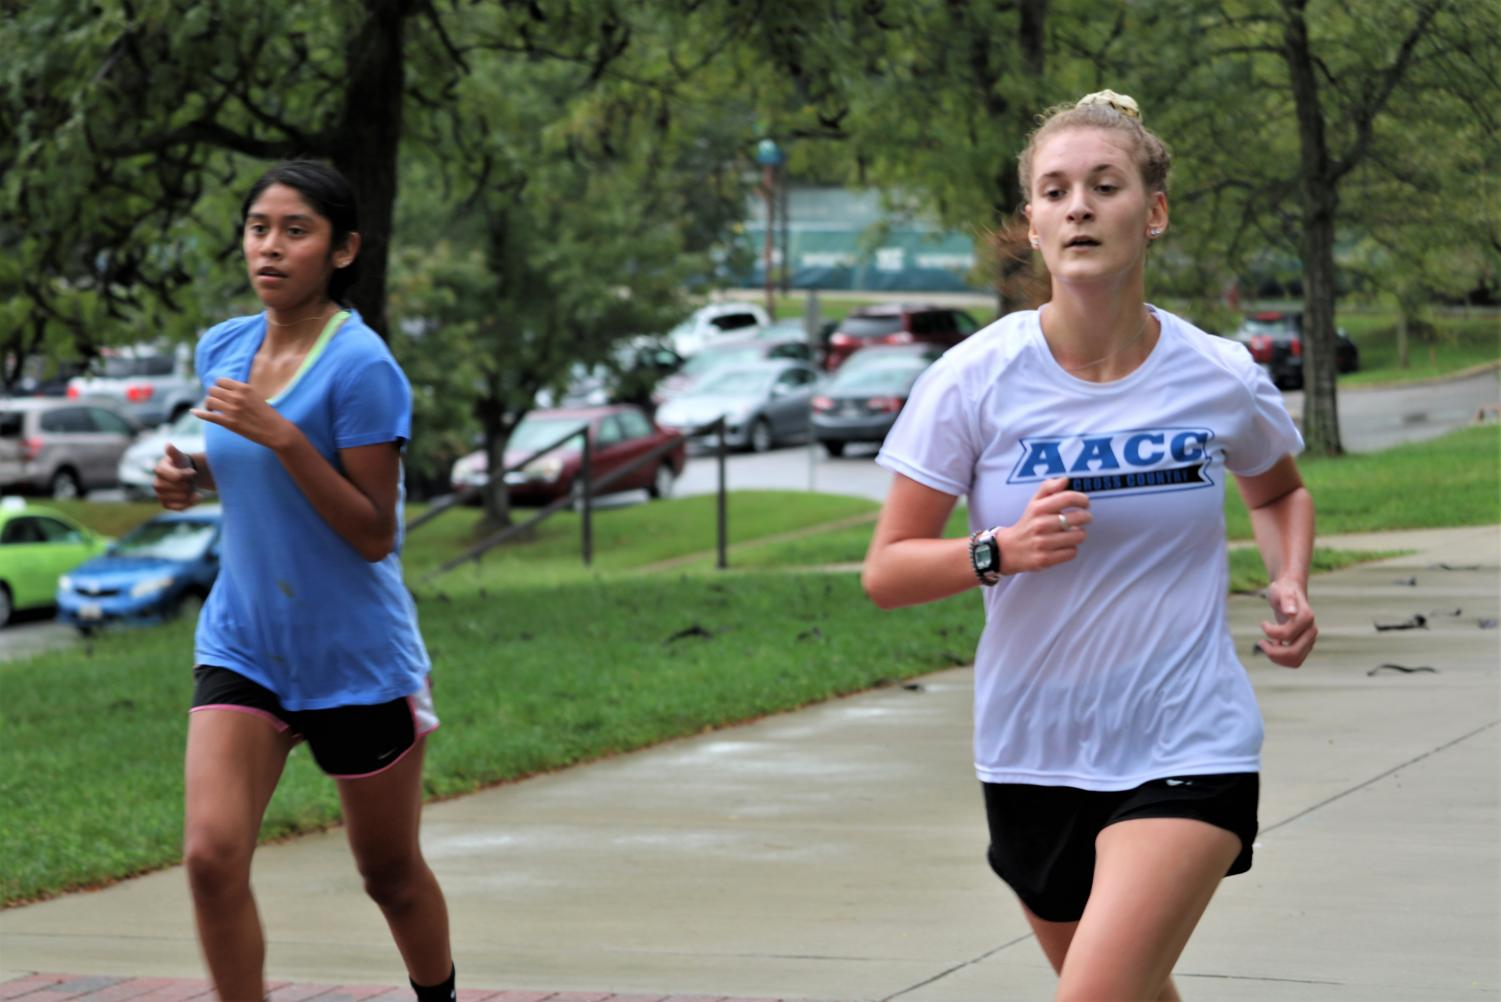 Cross Country runners Leslei Garcia Mendez, left, and Emily Jacobsen keep in shape by running on campus.